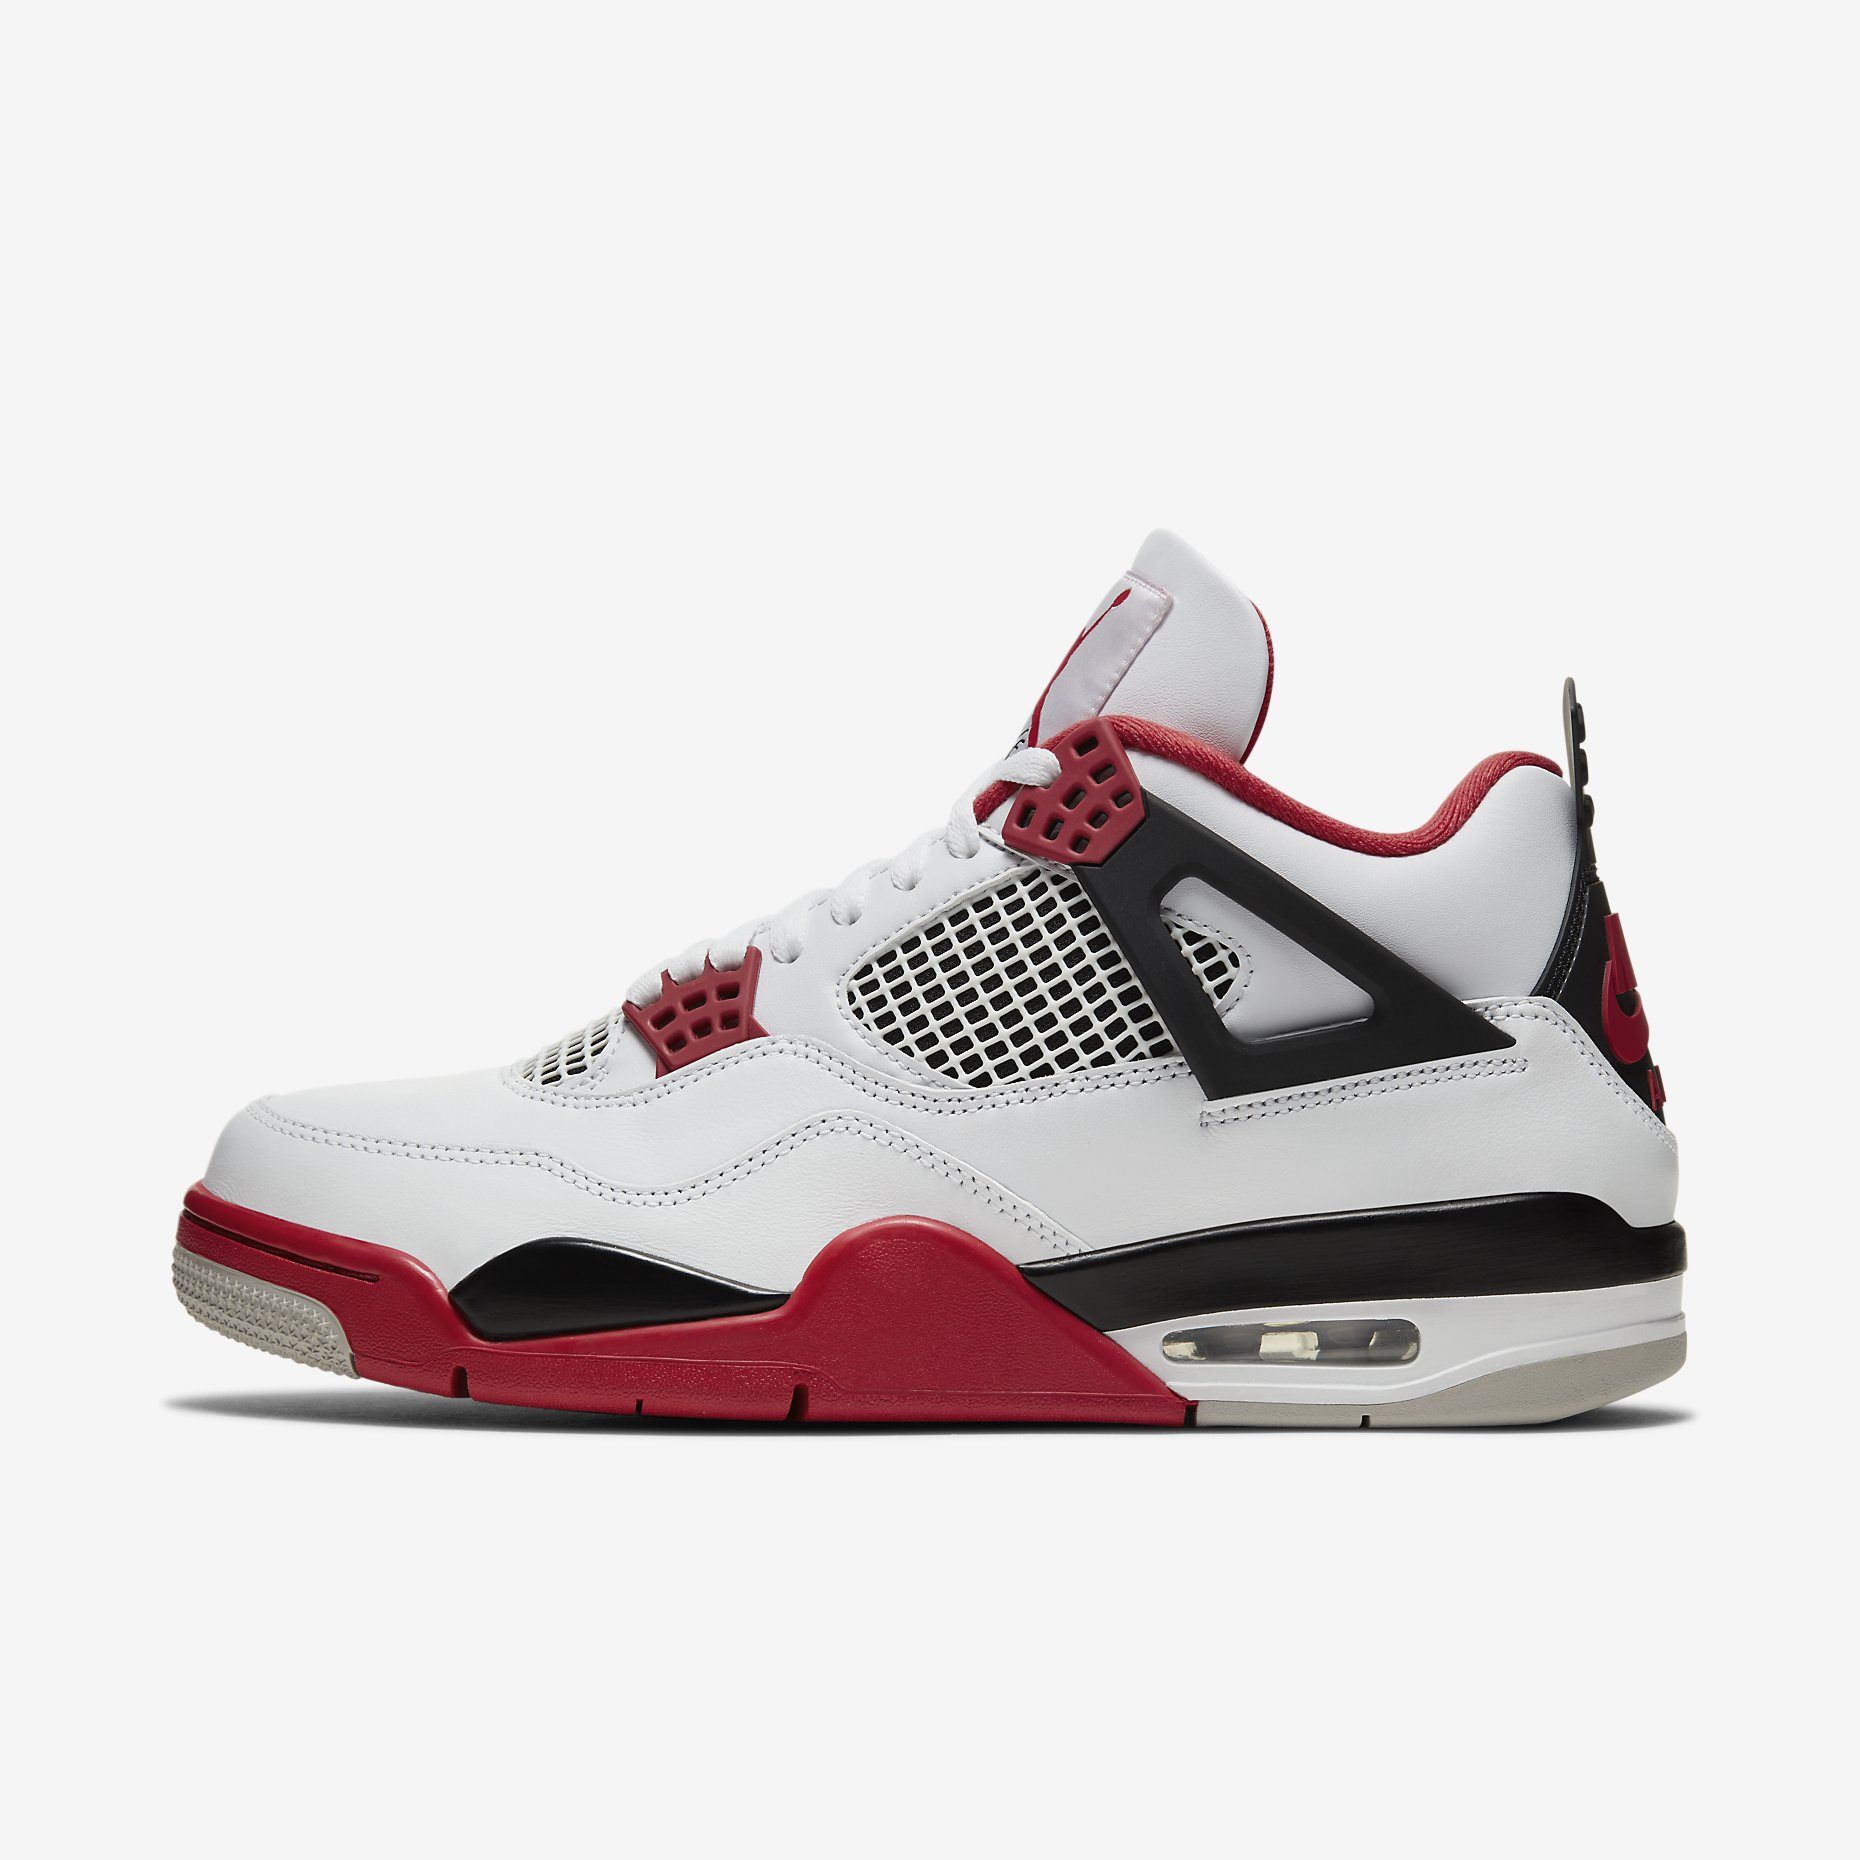 Air Jordan 4 Retro 'Fire Red'}